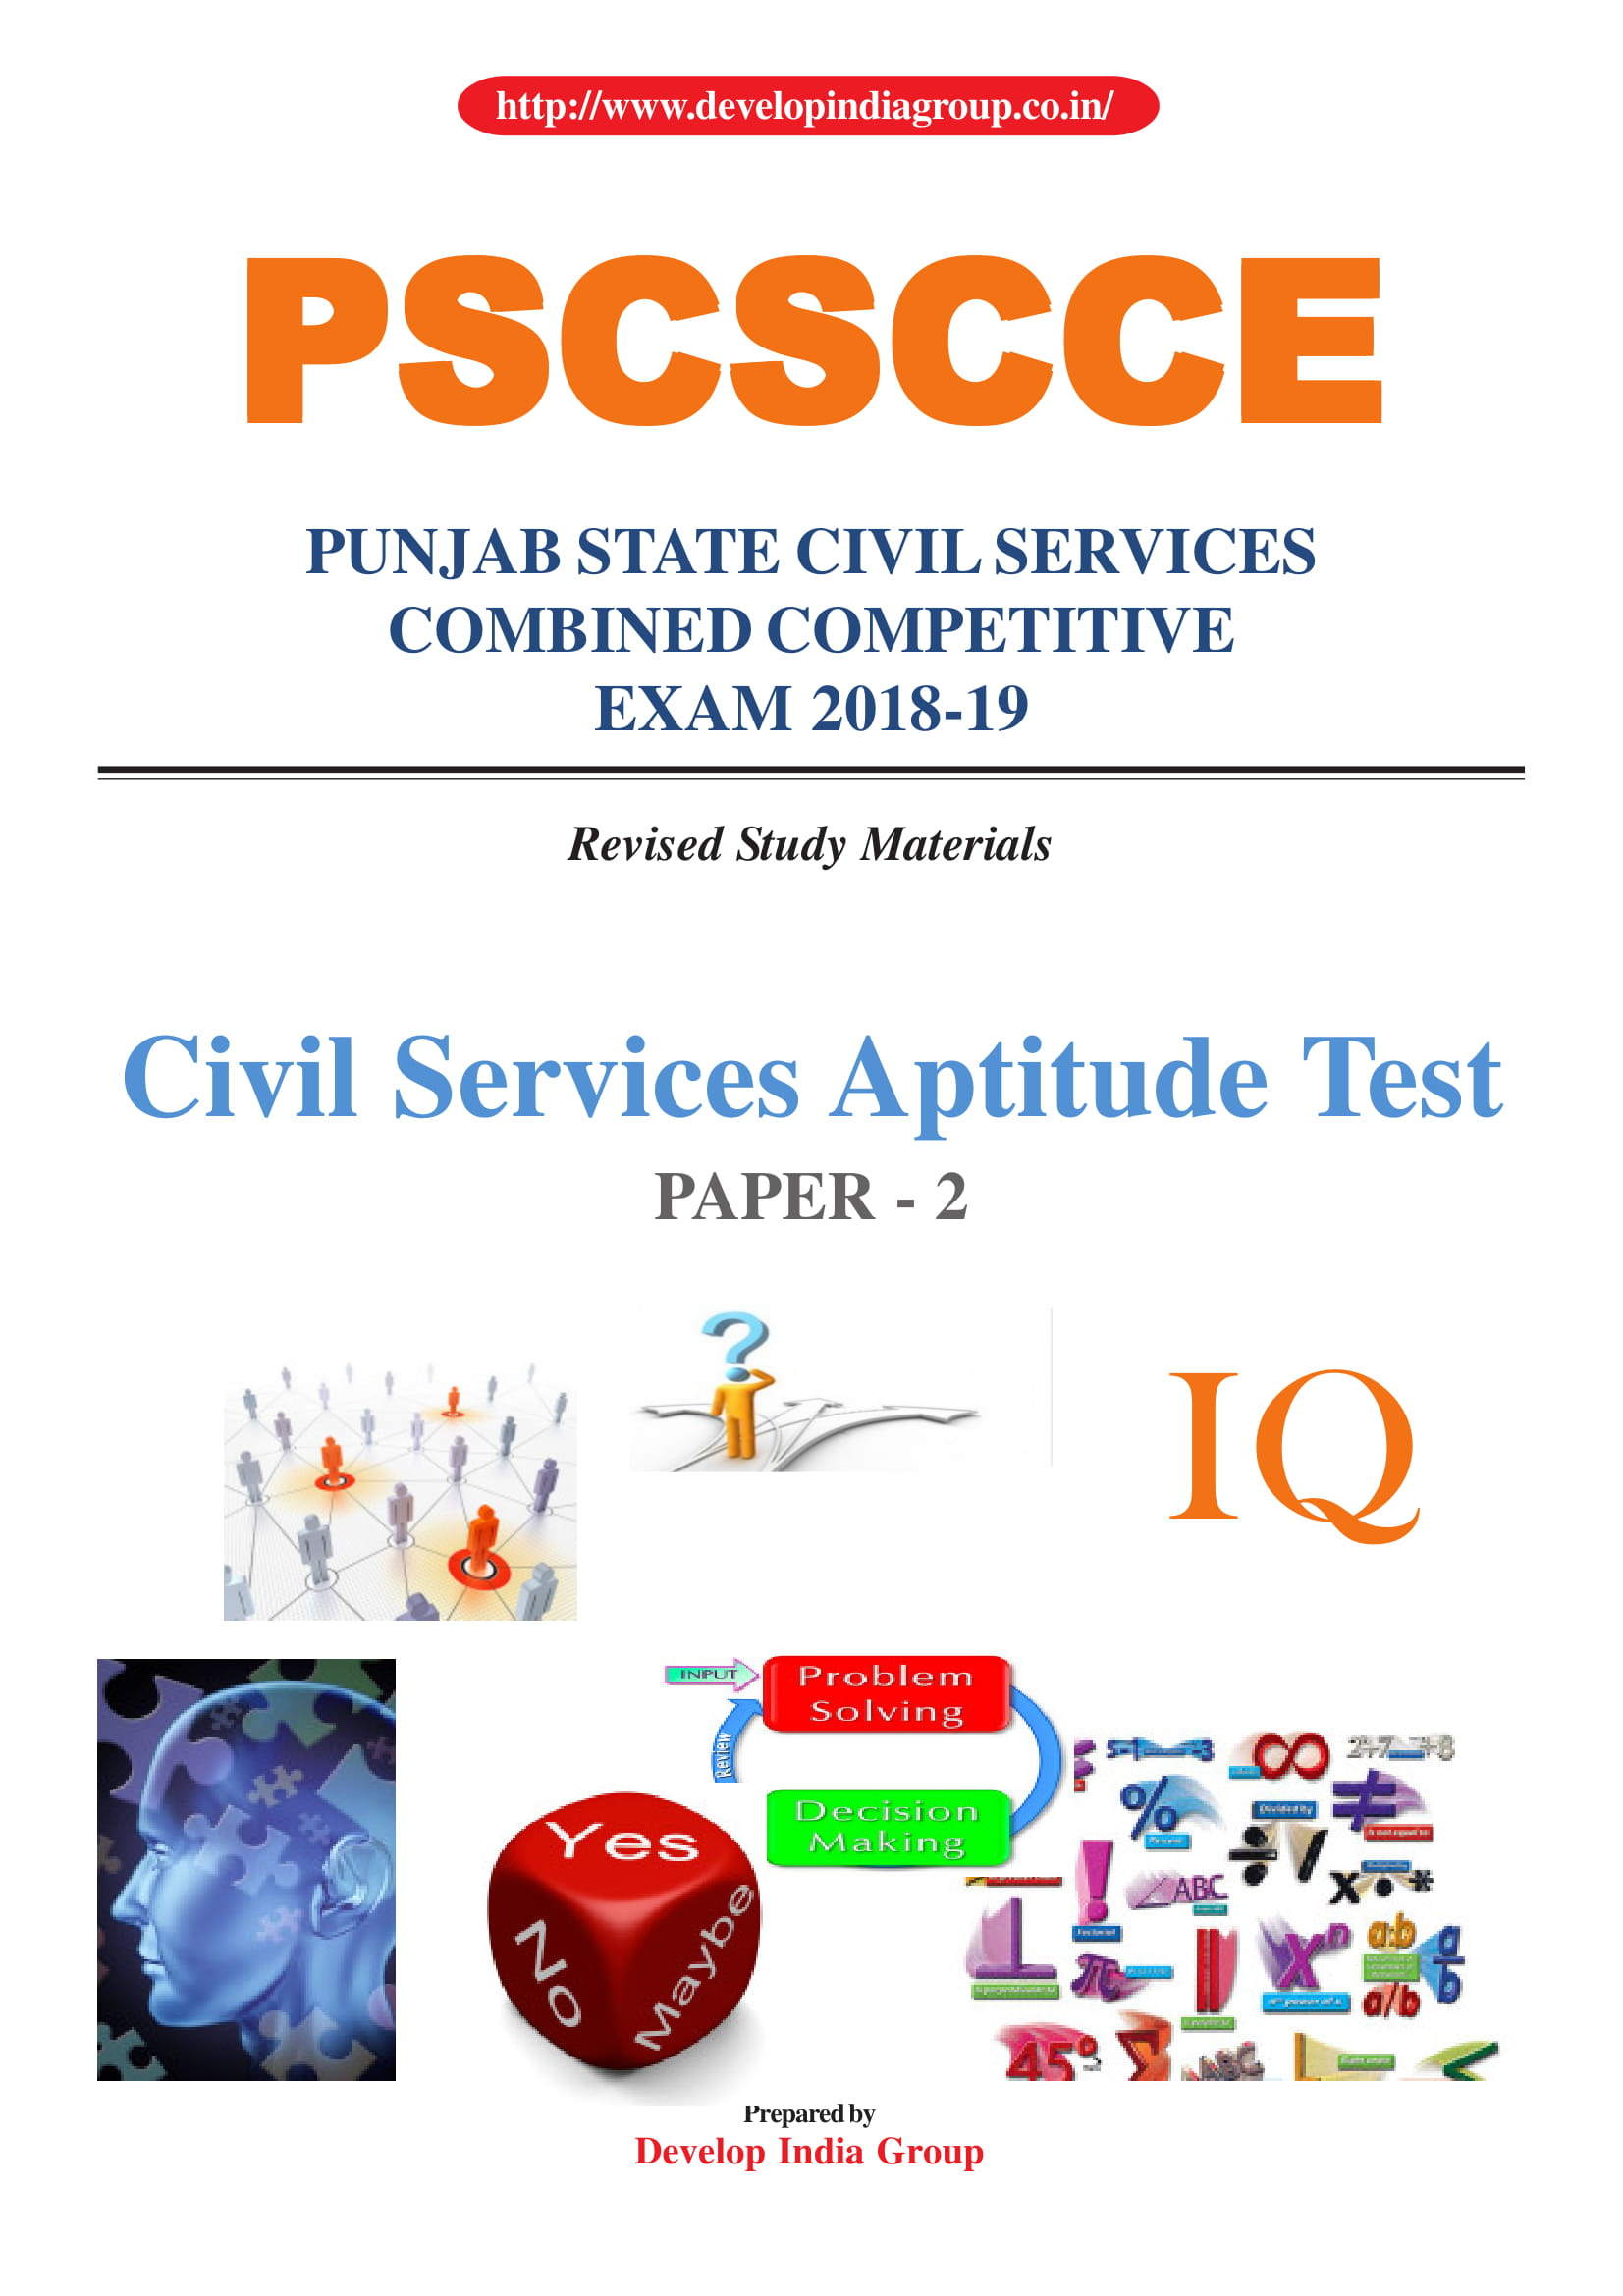 Punjab PSC General Studies paper II cover